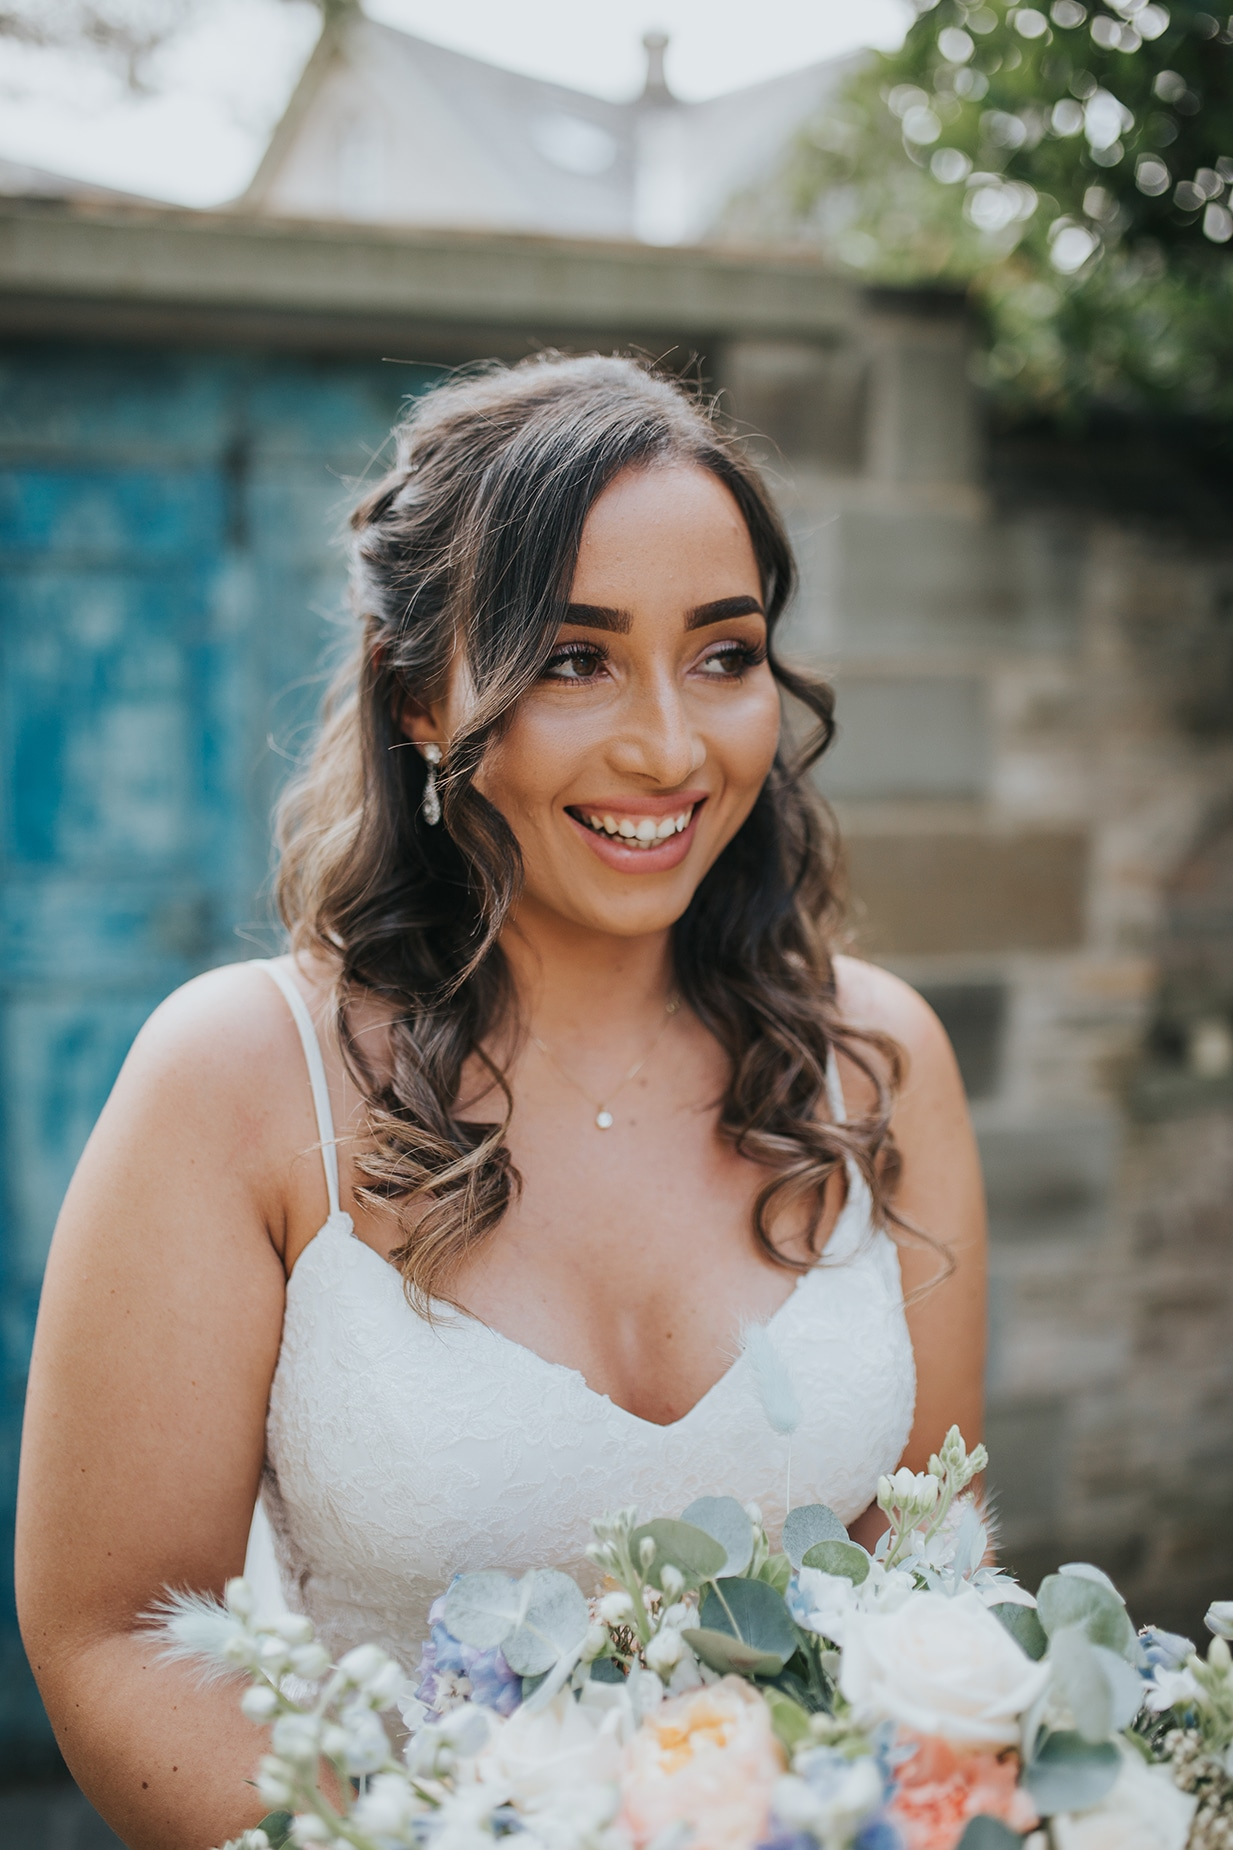 Bridal Portraits at a Lemore Manor Wedding in Hereford